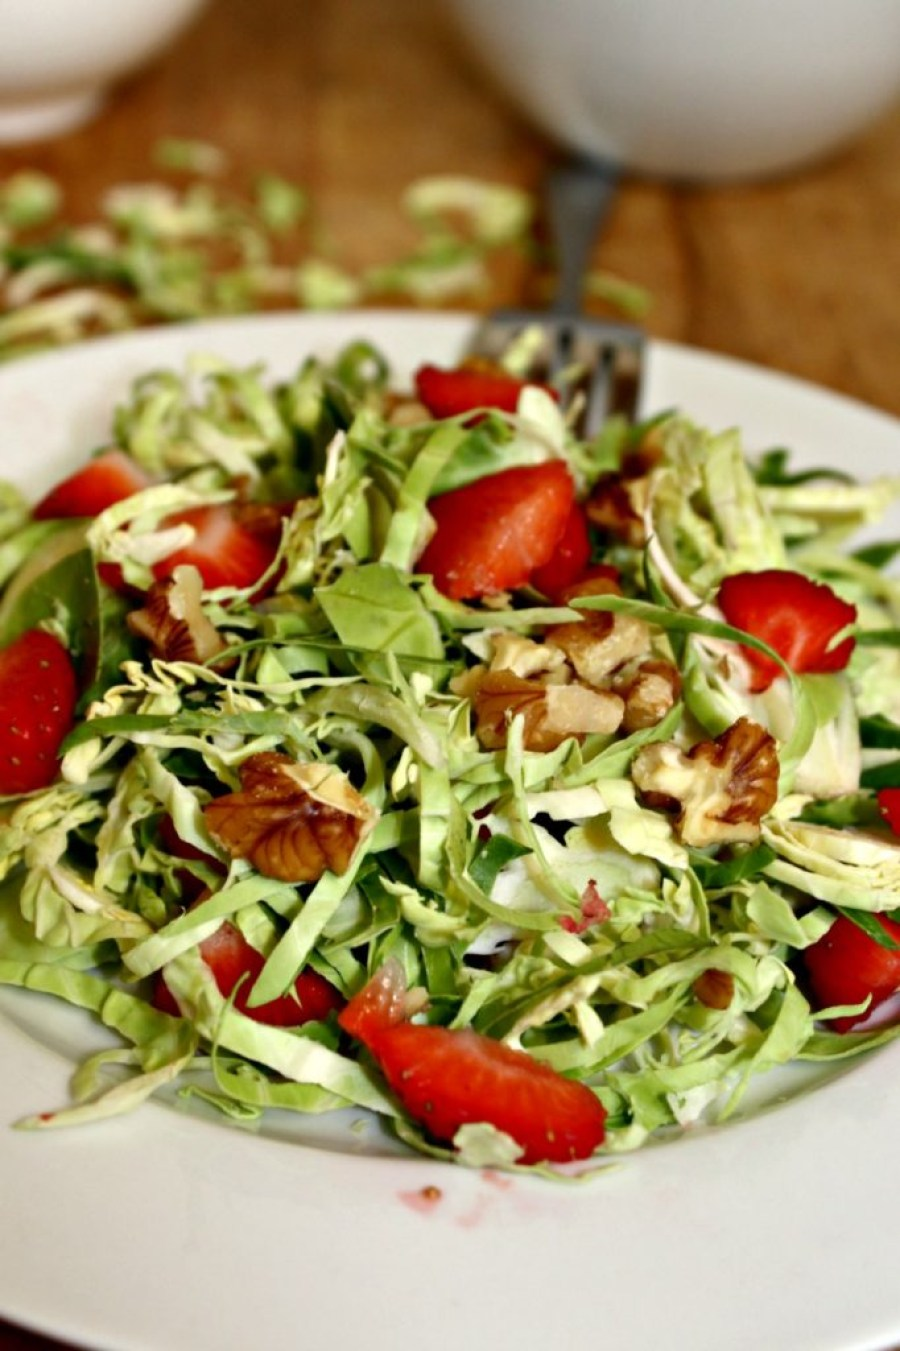 Shaved Brussels Sprouts Salad with walnuts and strawberries